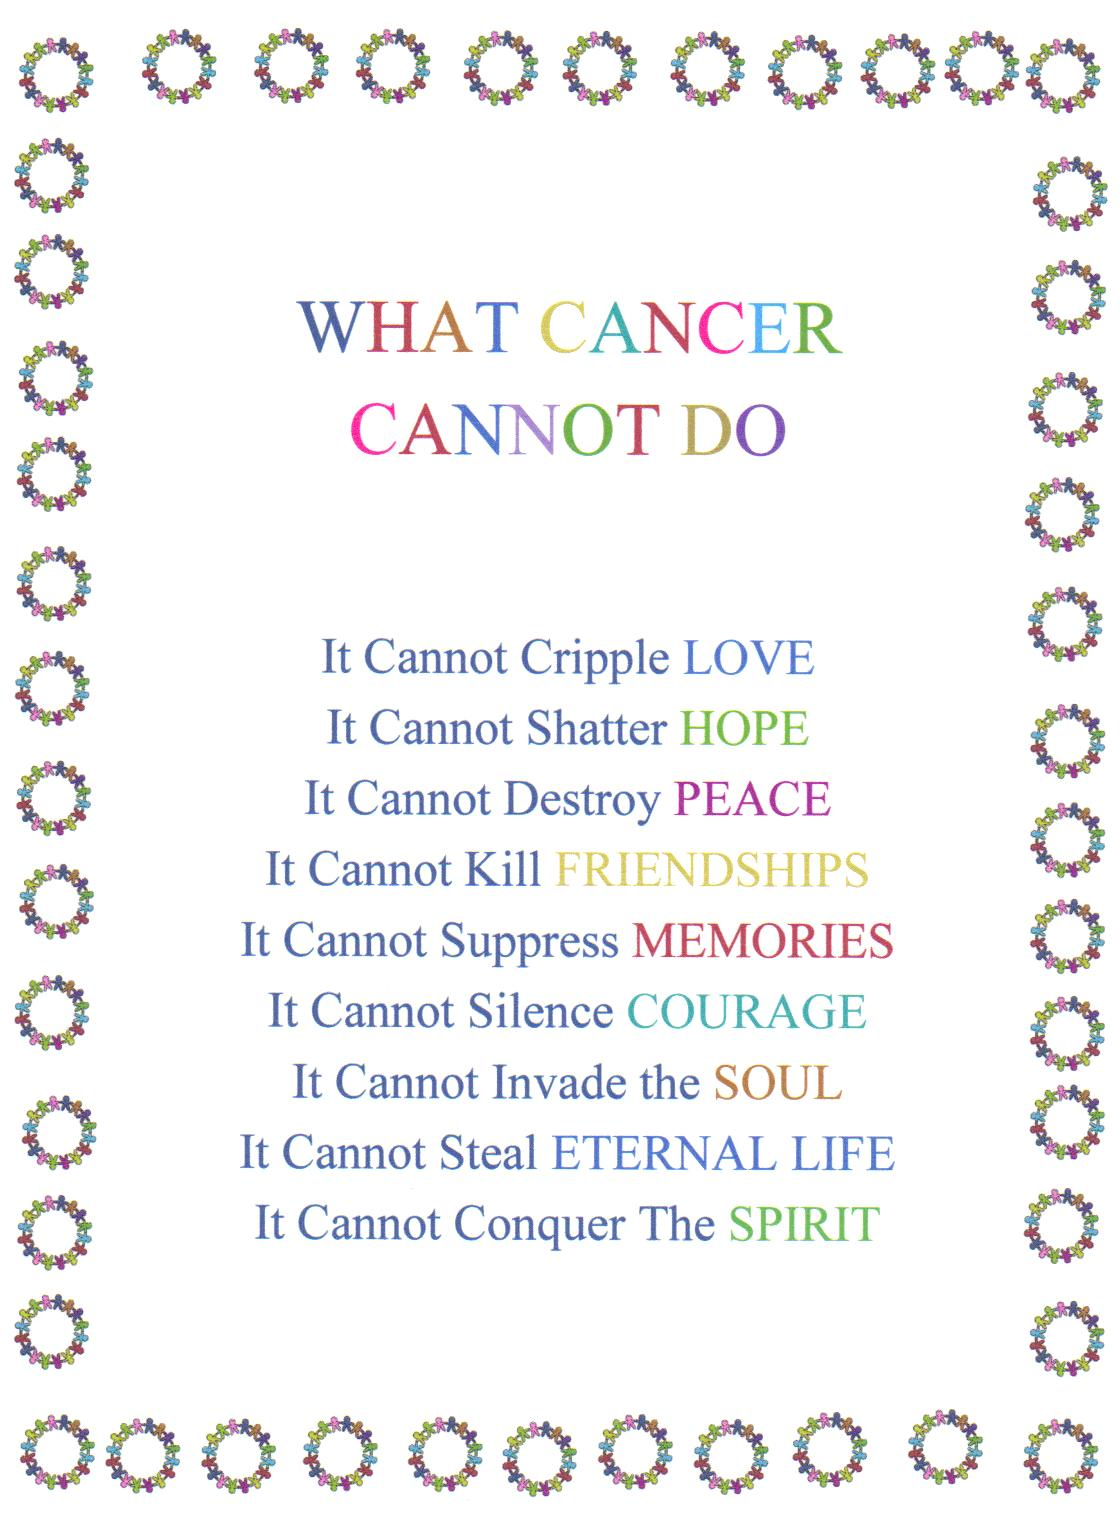 What cancer cannot do what cancer cannot do poem to print view